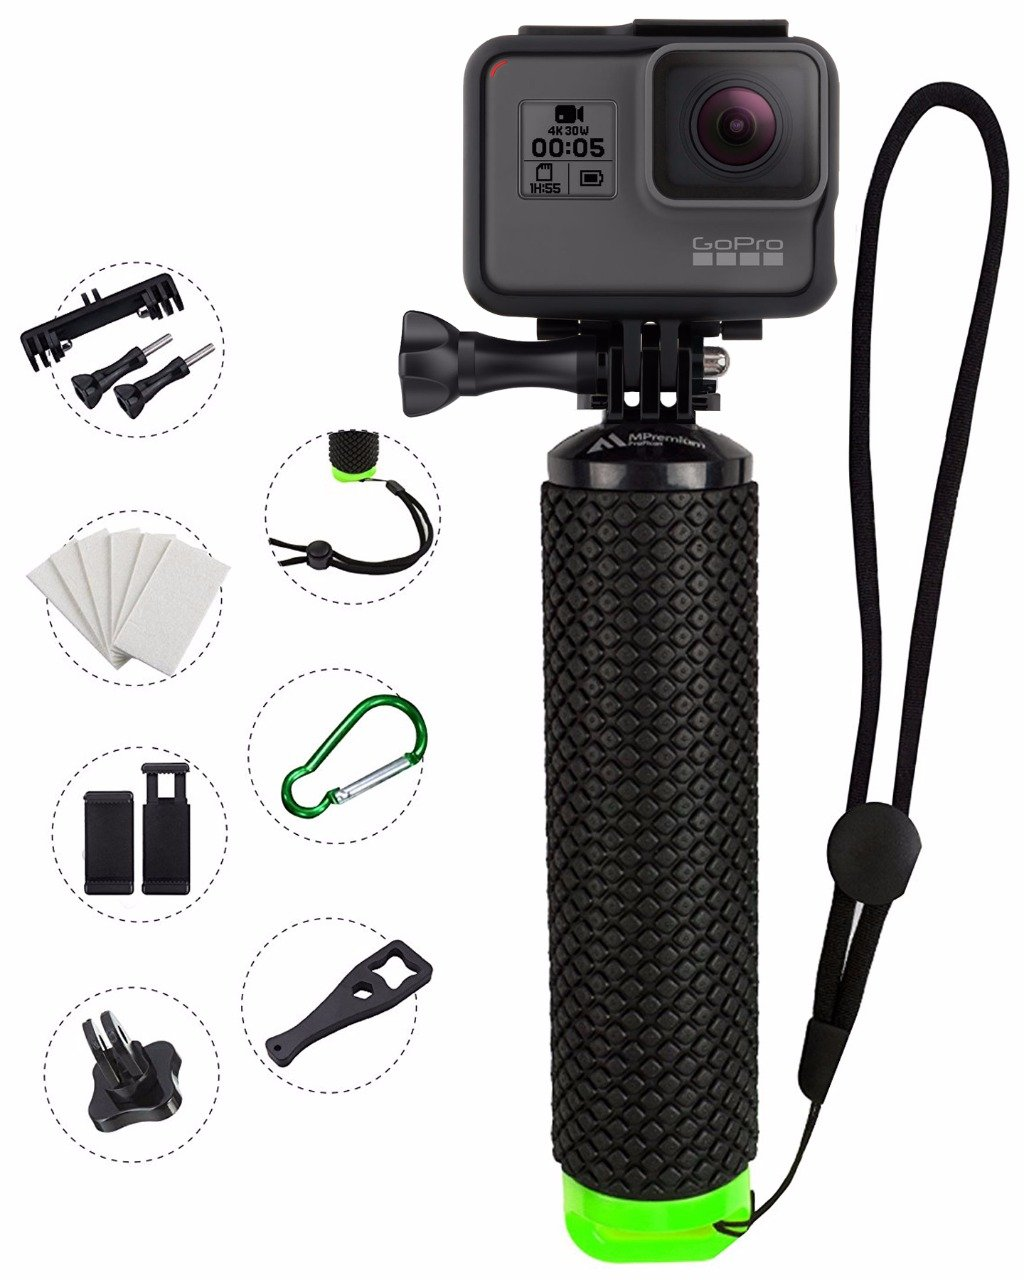 ProFloat Waterproof Floating Hand Grip compatible with GoPro Cameras Hero 4 Session Black Silver Hero 2 3 3+ 4. Handler Plus FREE Handle Mount Accessories. Water Sport Floaty for Action Camera (Green)